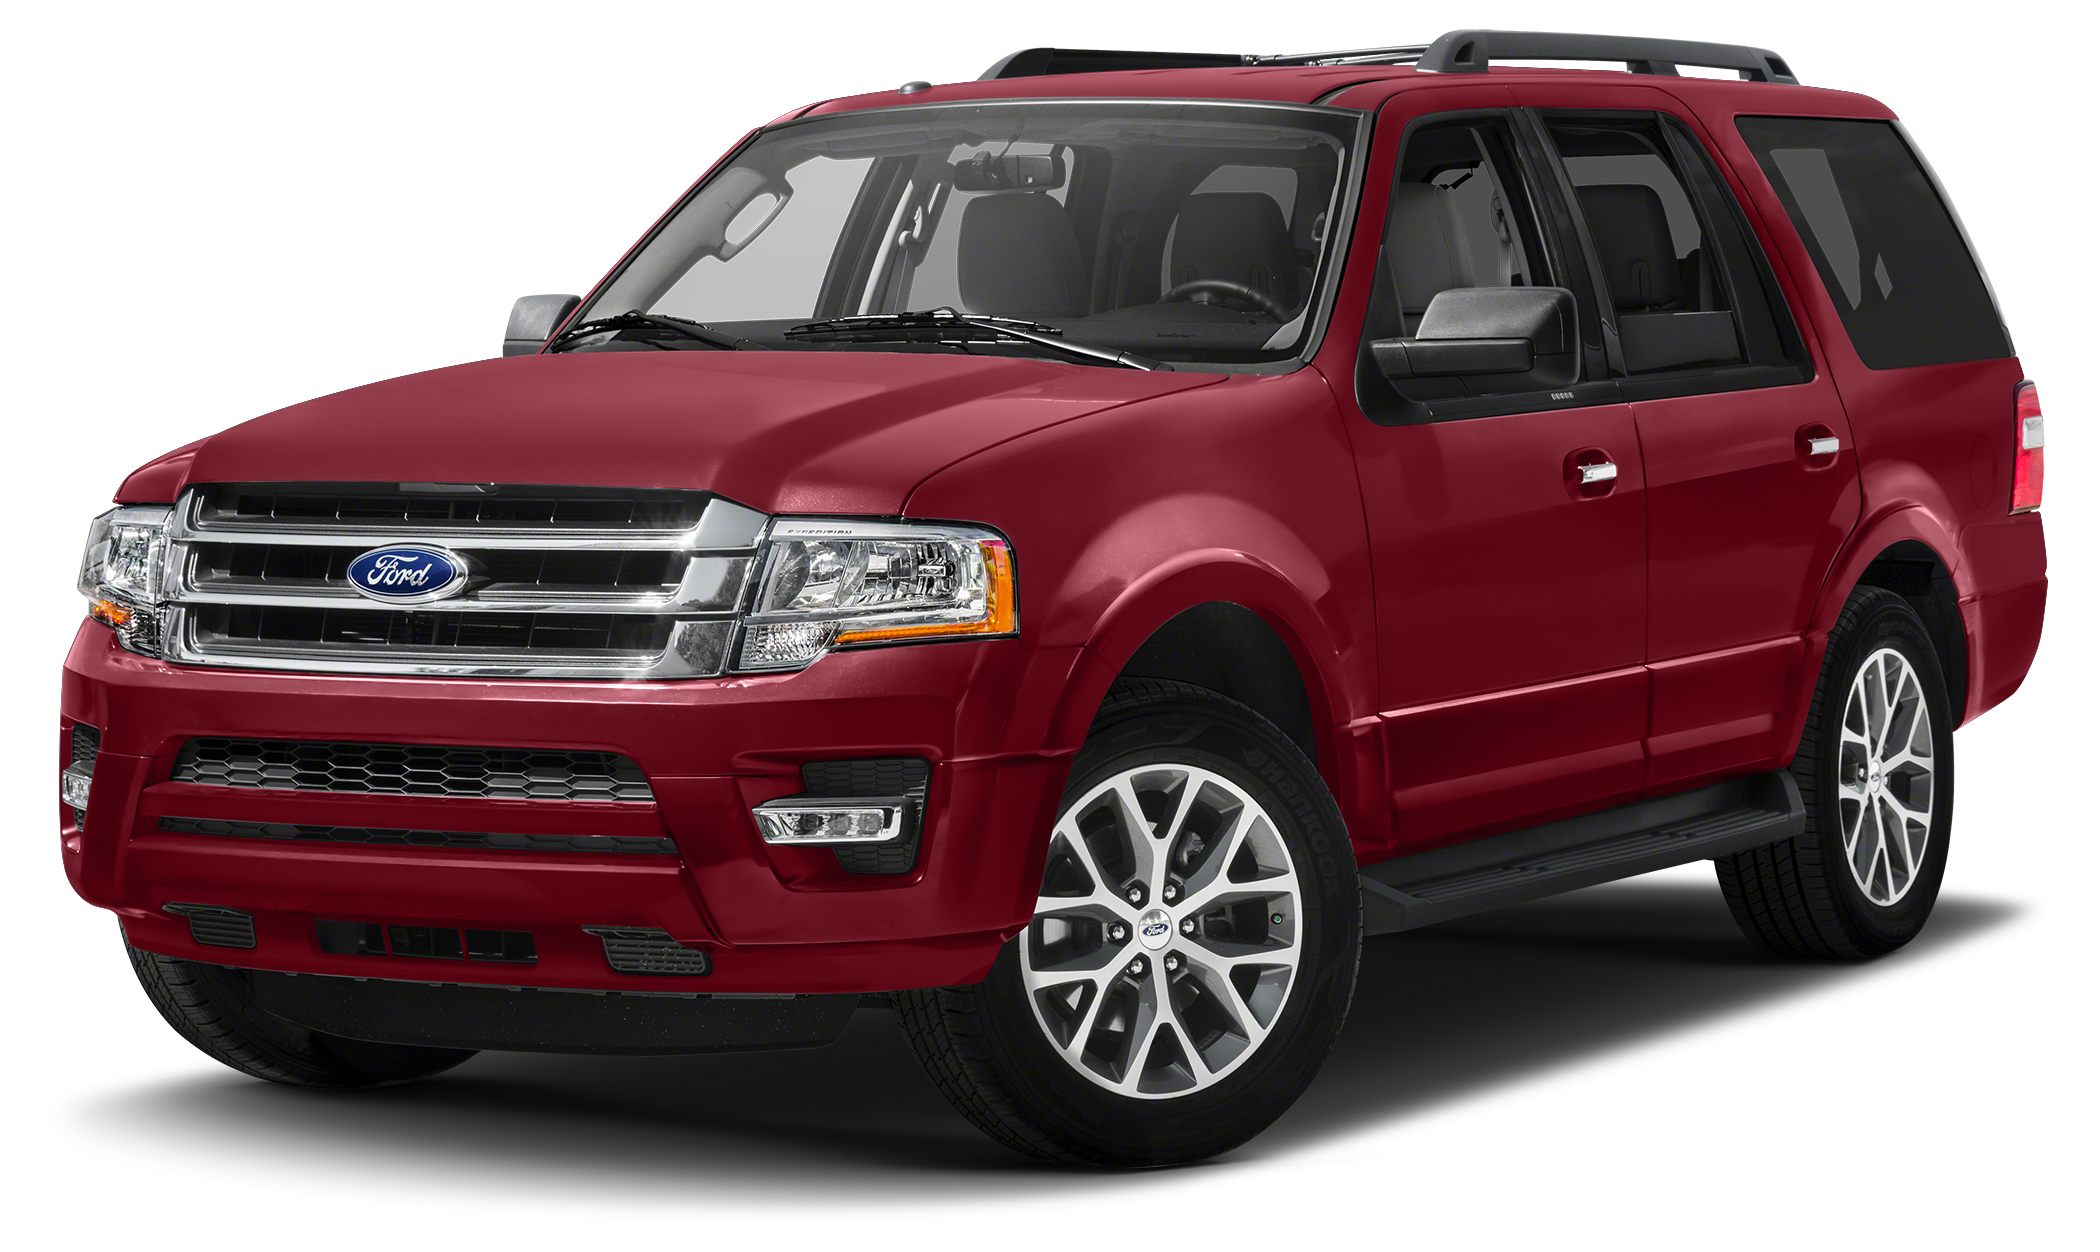 2017 Ford Expedition XLT Price includes 500 - Ford Credit Retail Bonus Customer Cash Exp 0501